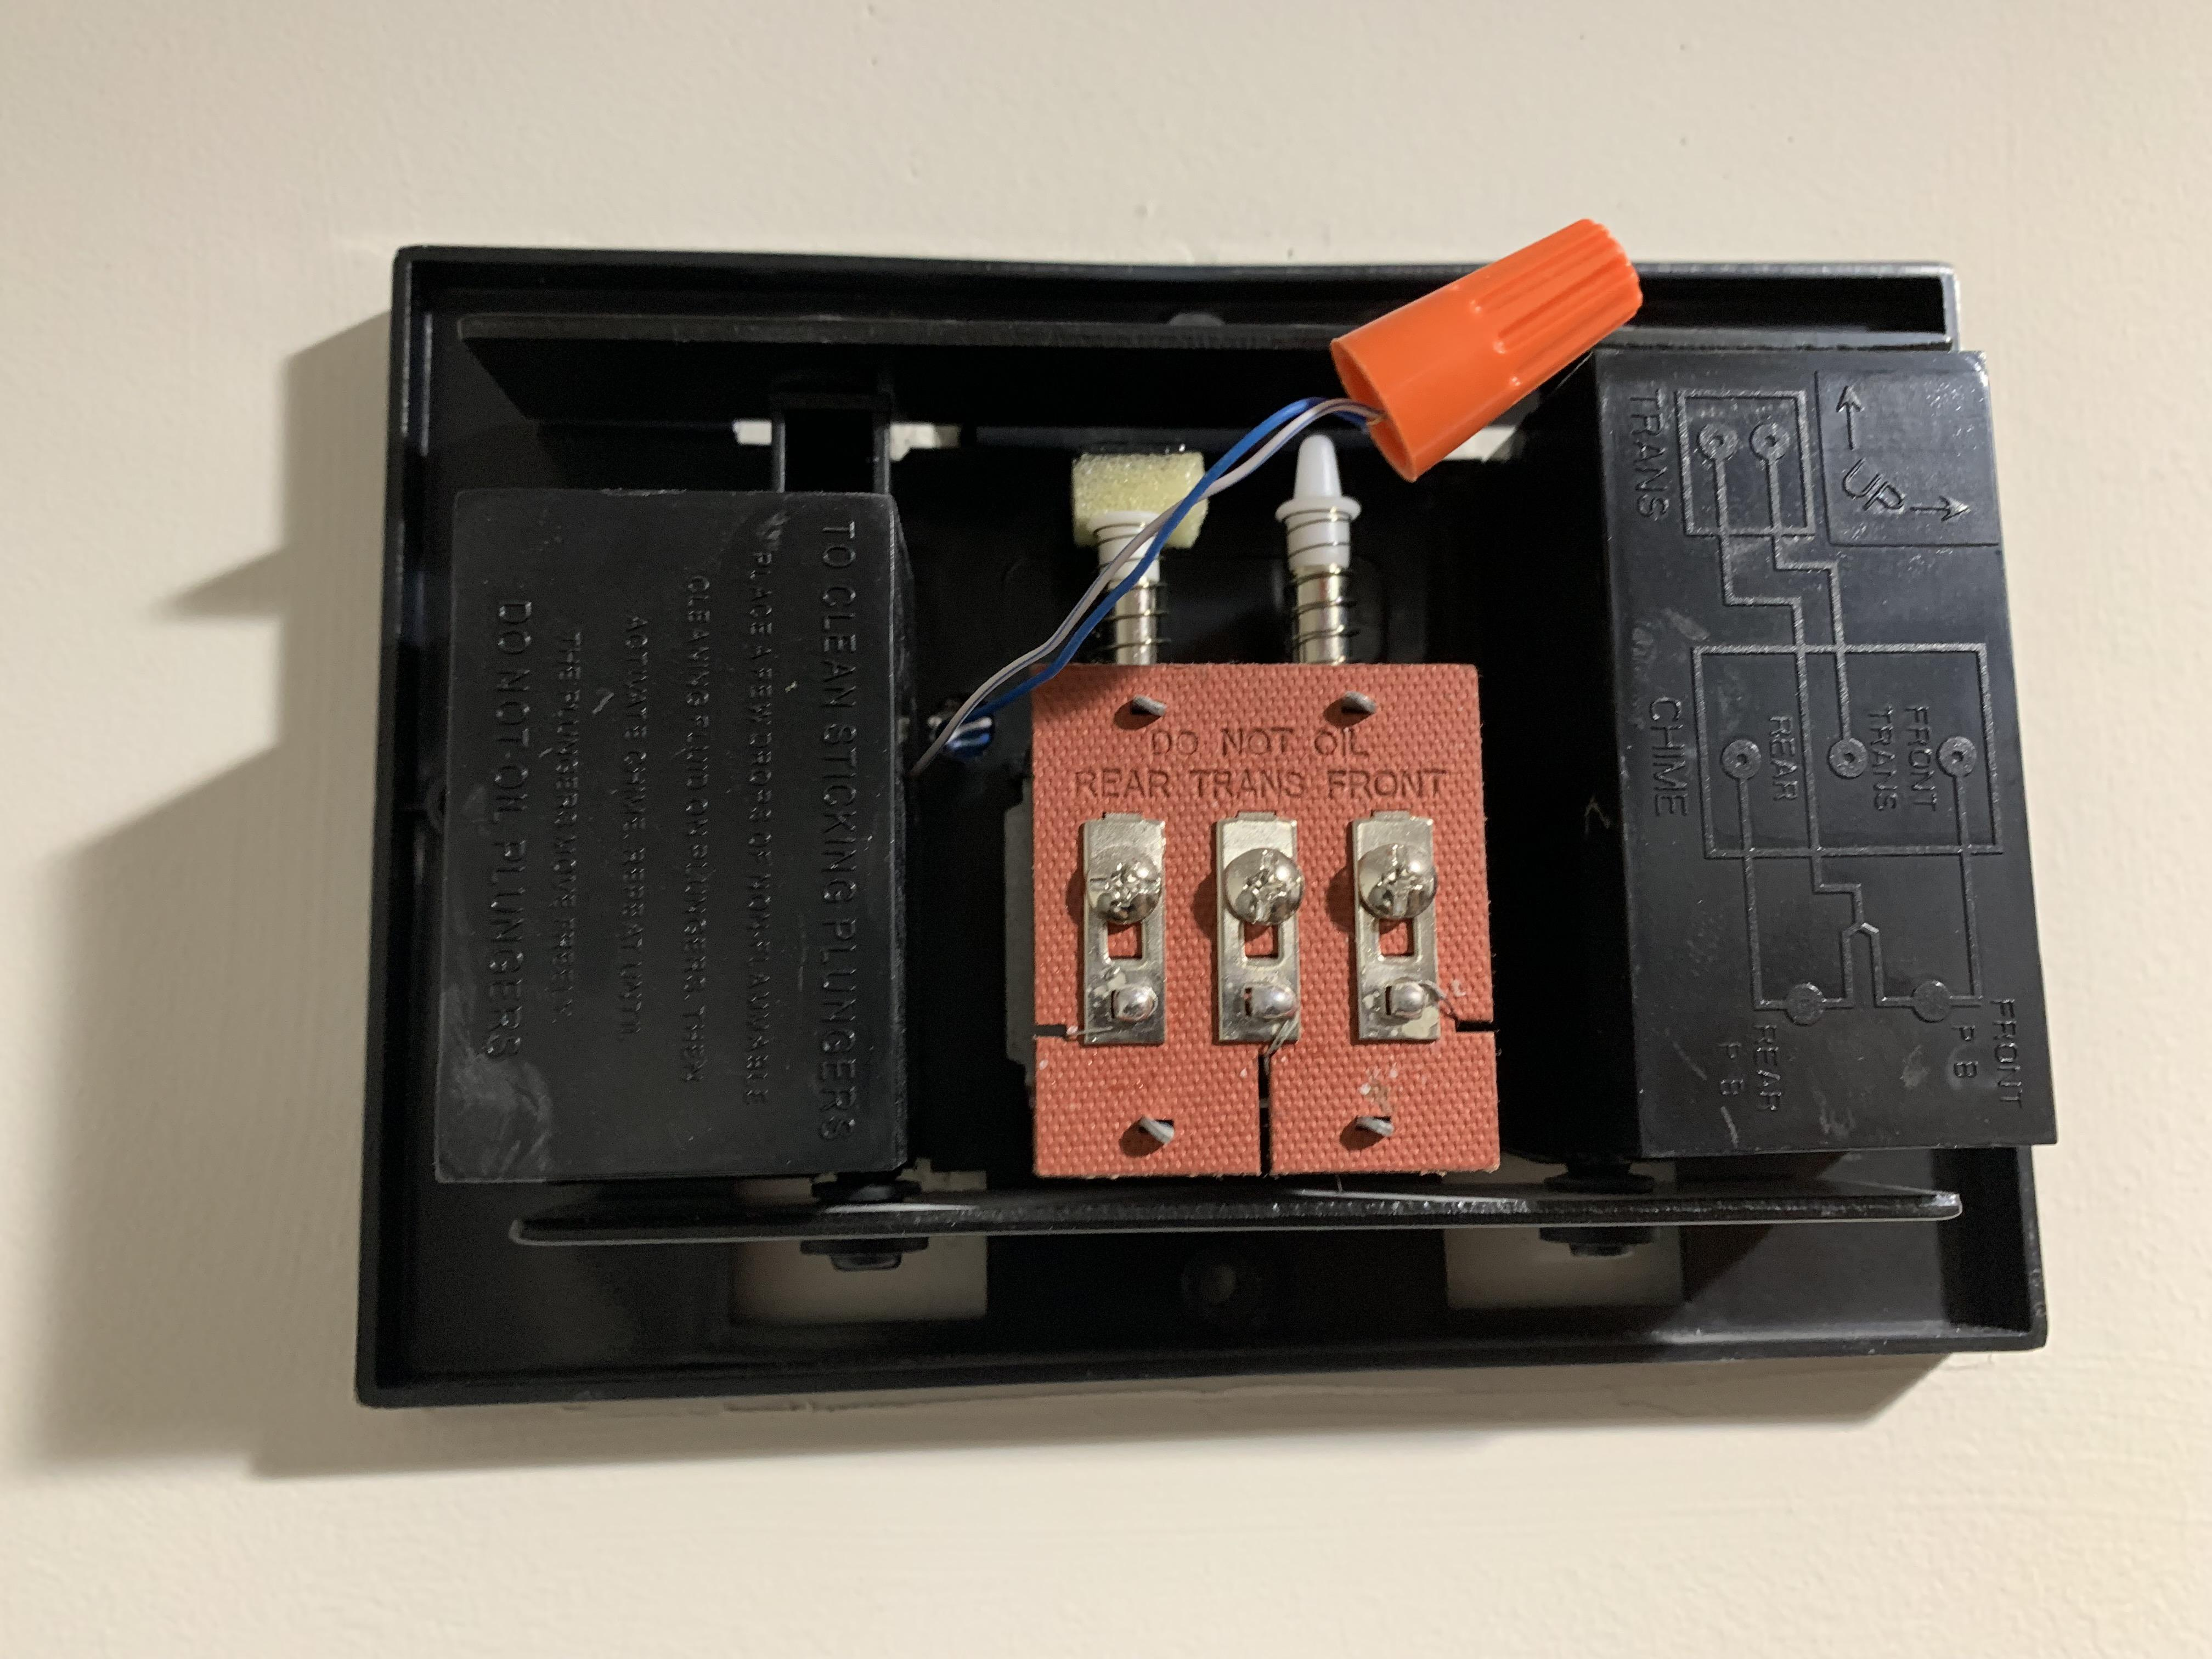 Chime Wiring Diagram Also Doorbell Two Chimes Wiring Diagram Wiring